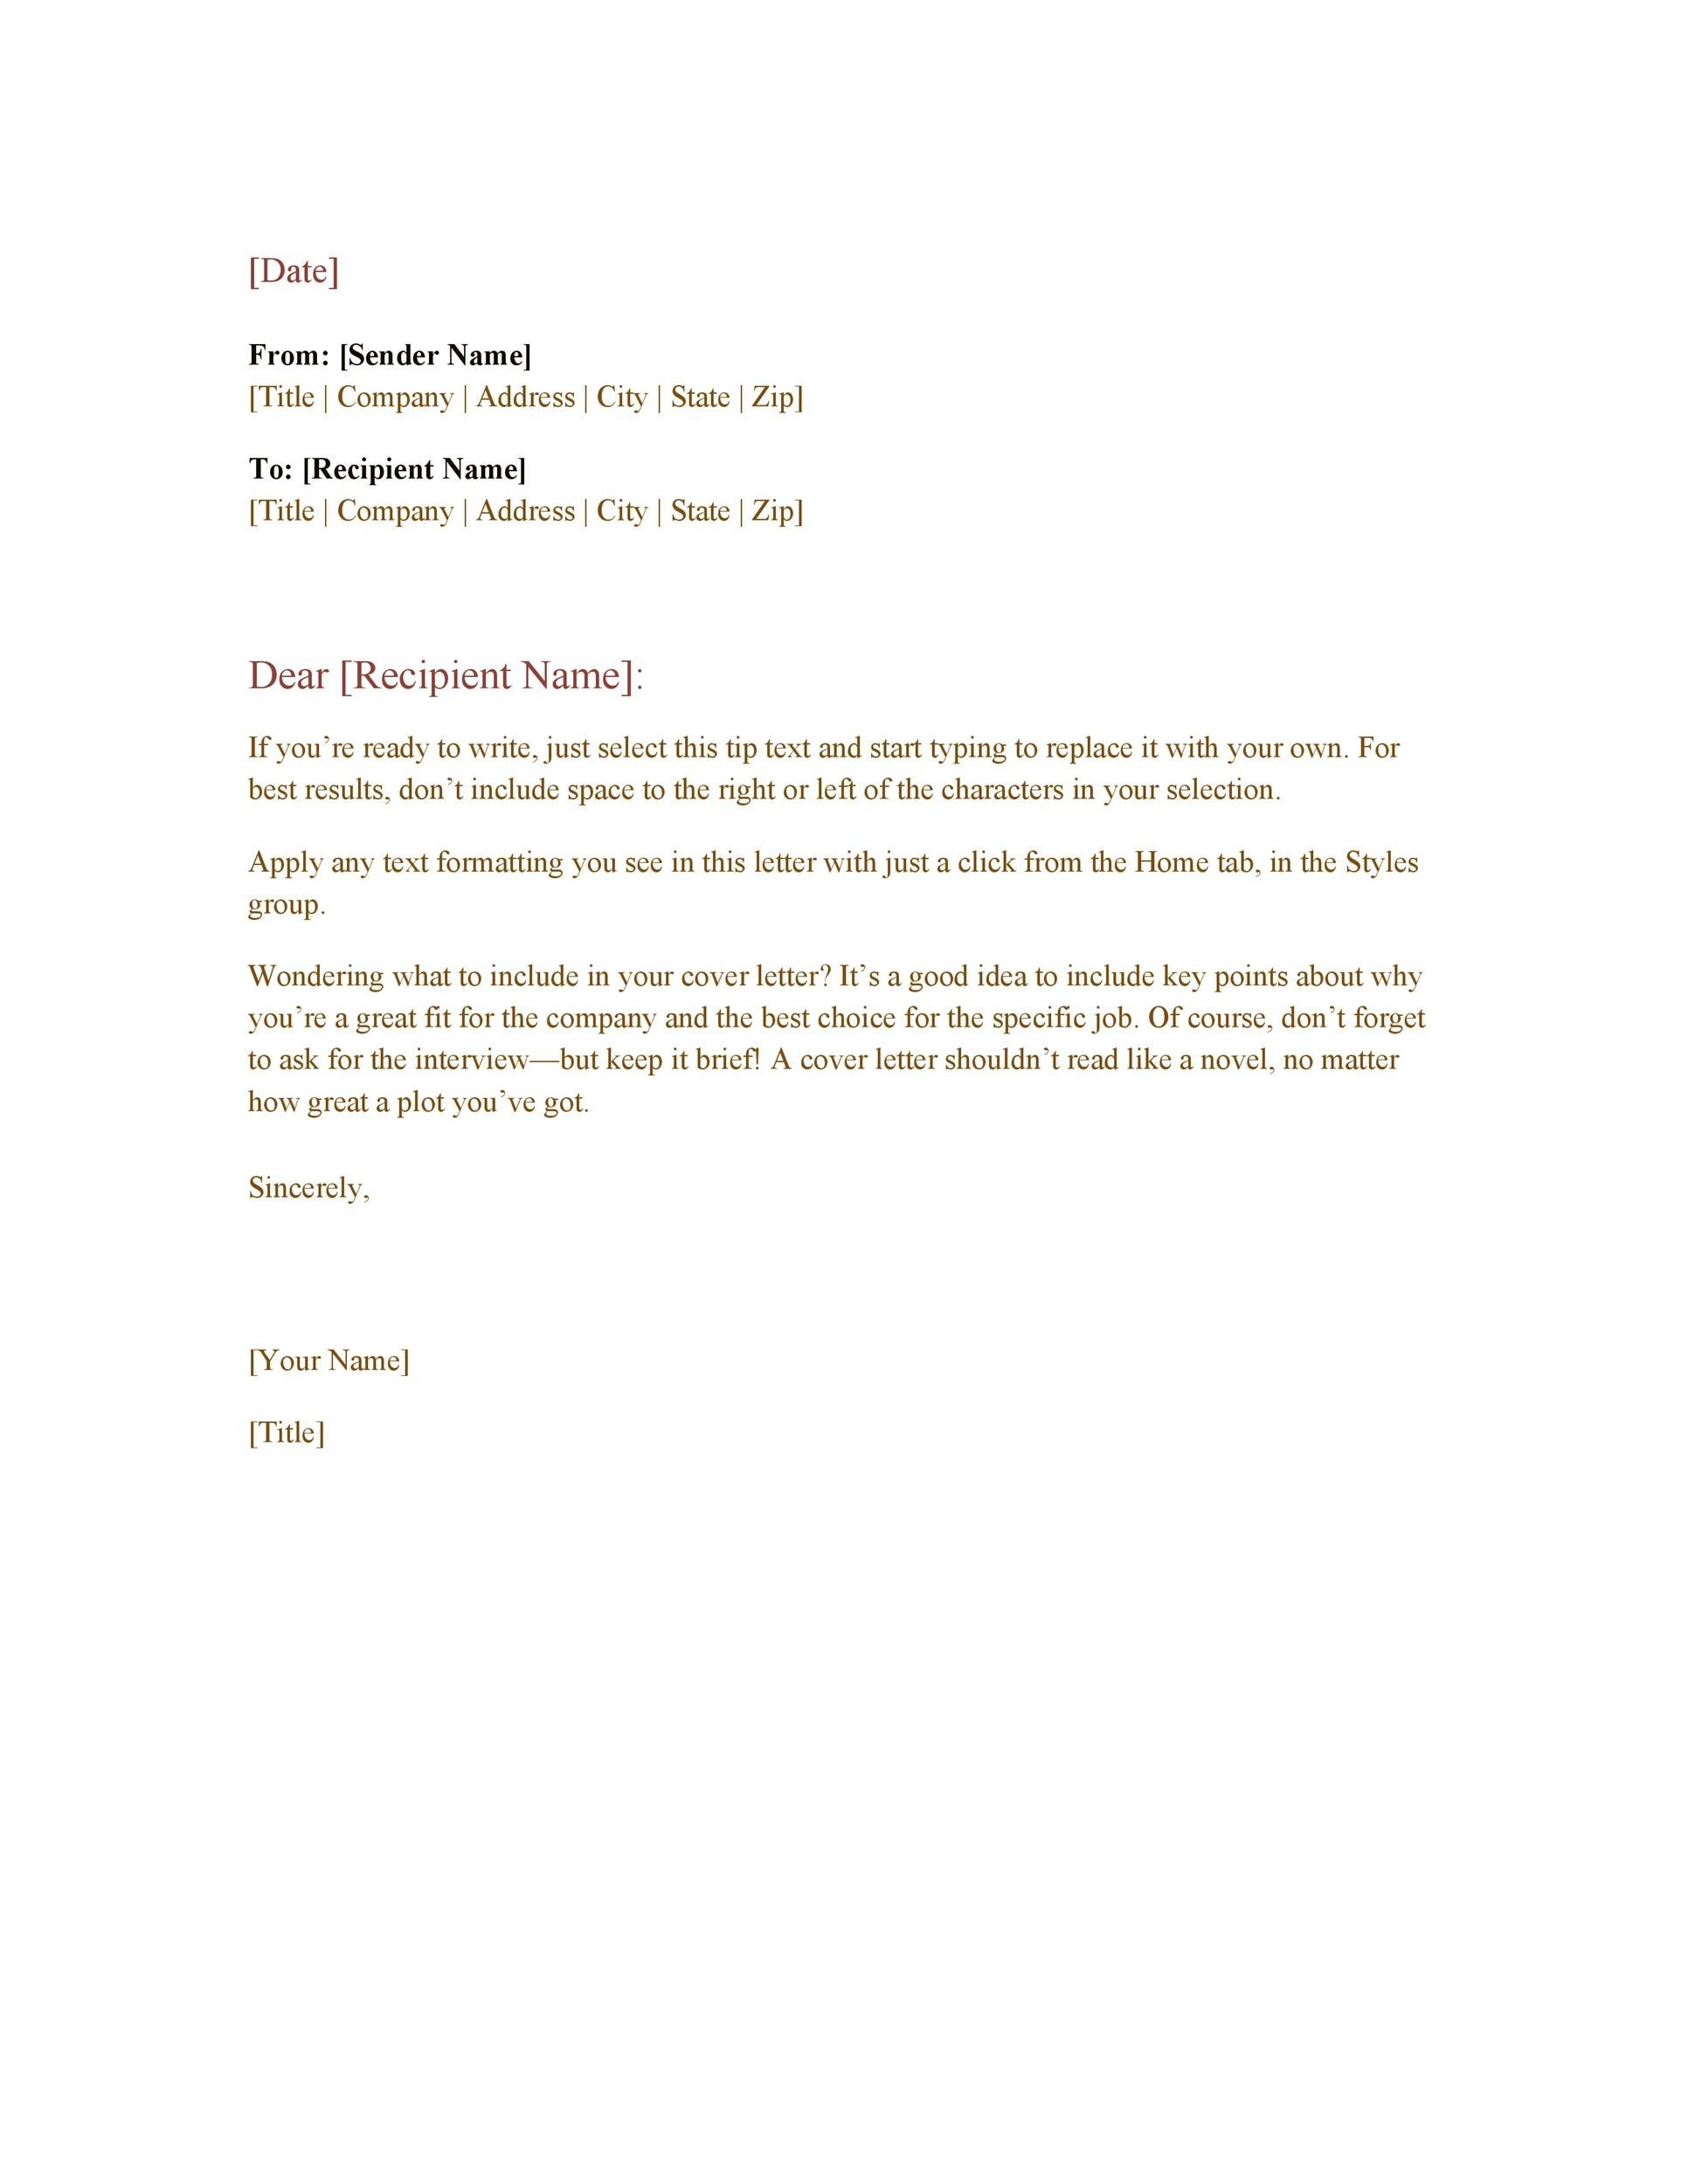 35 Formal Business Letter Format Templates Examples Template Lab – Sample Proper Letter Format